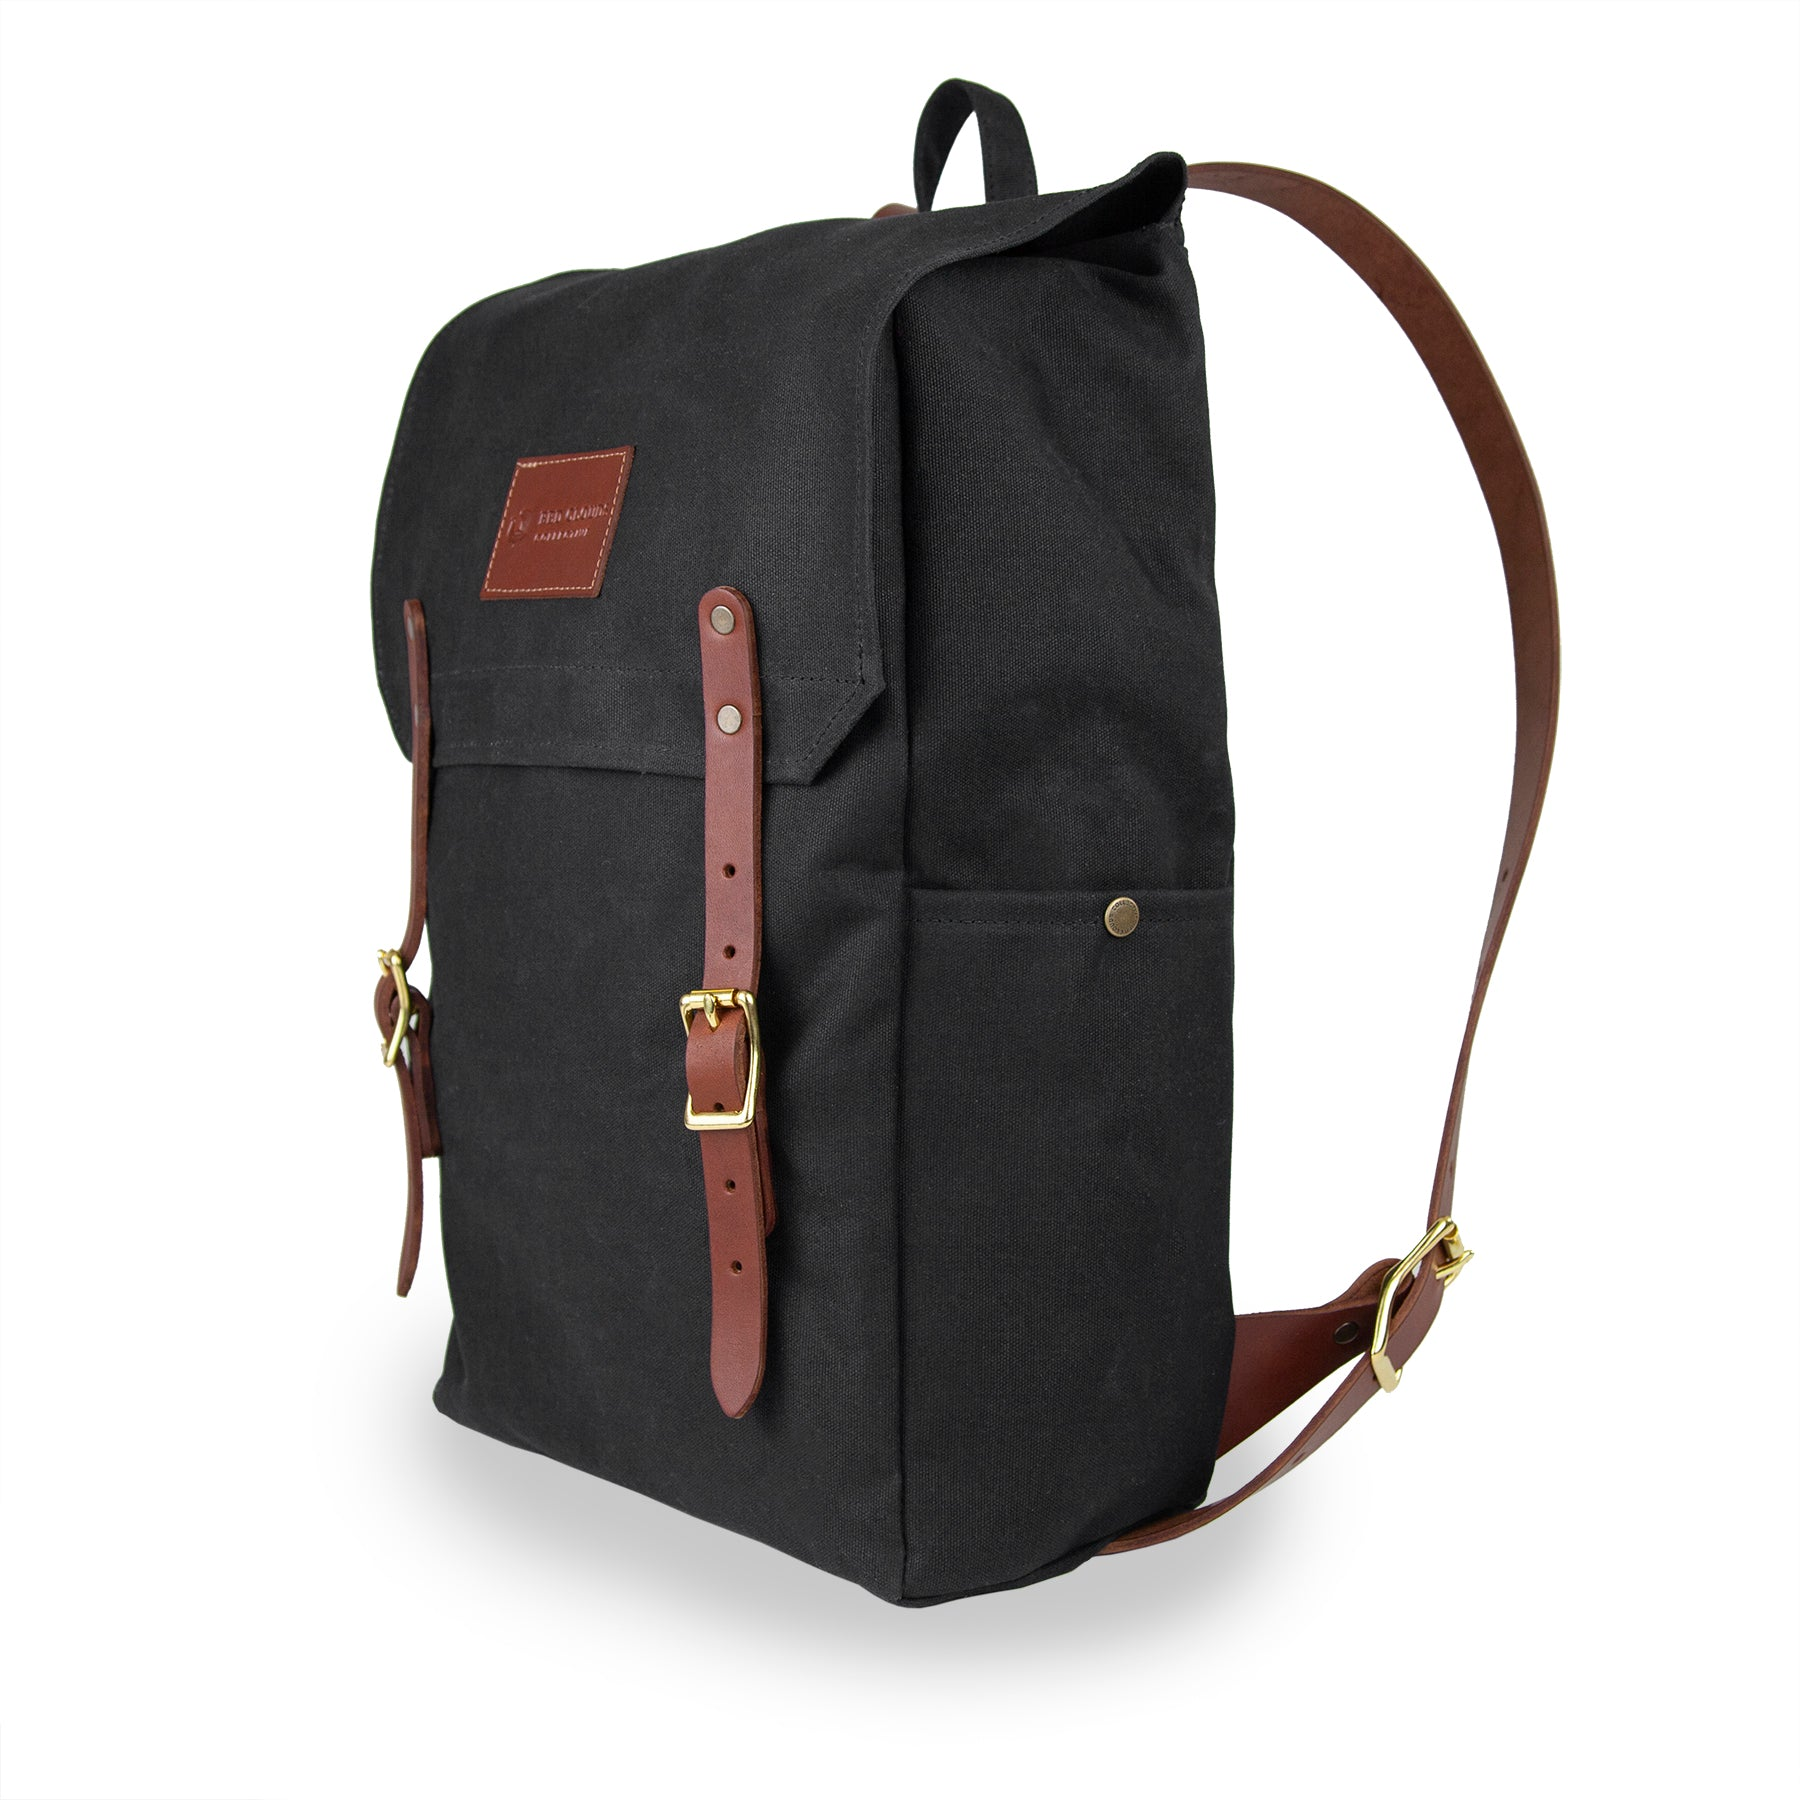 Day Tripper Backpack - Black with Brown Leather